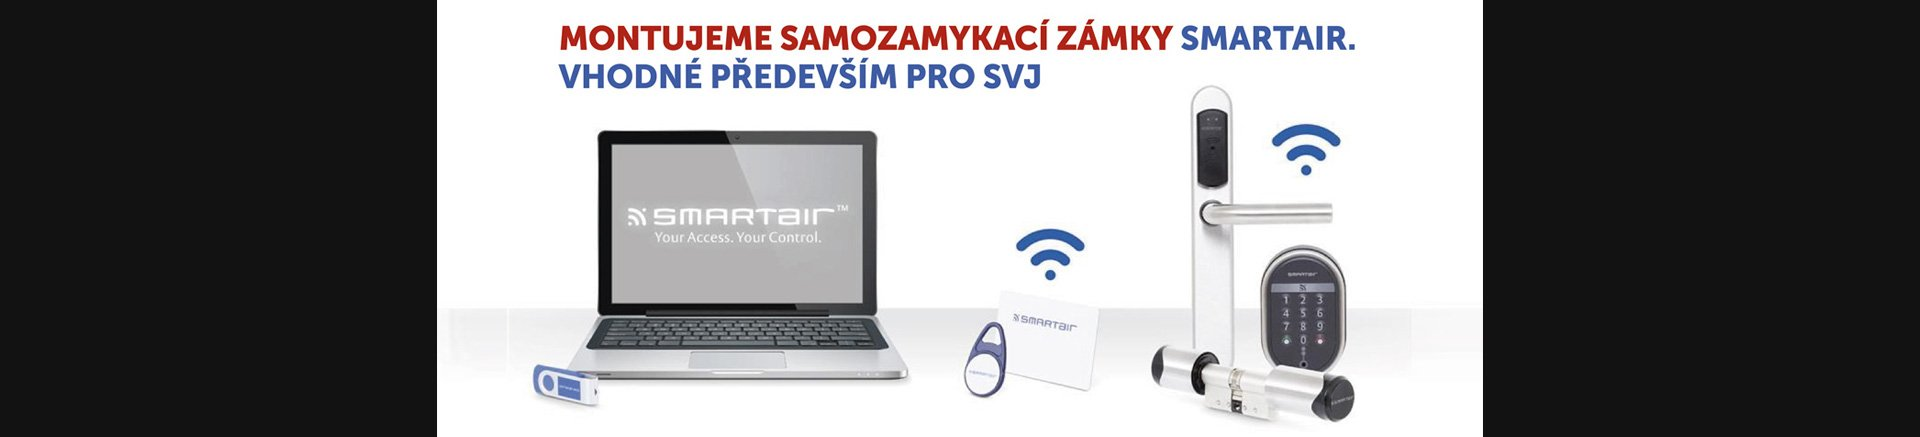 ZÁMKY SMART AIR